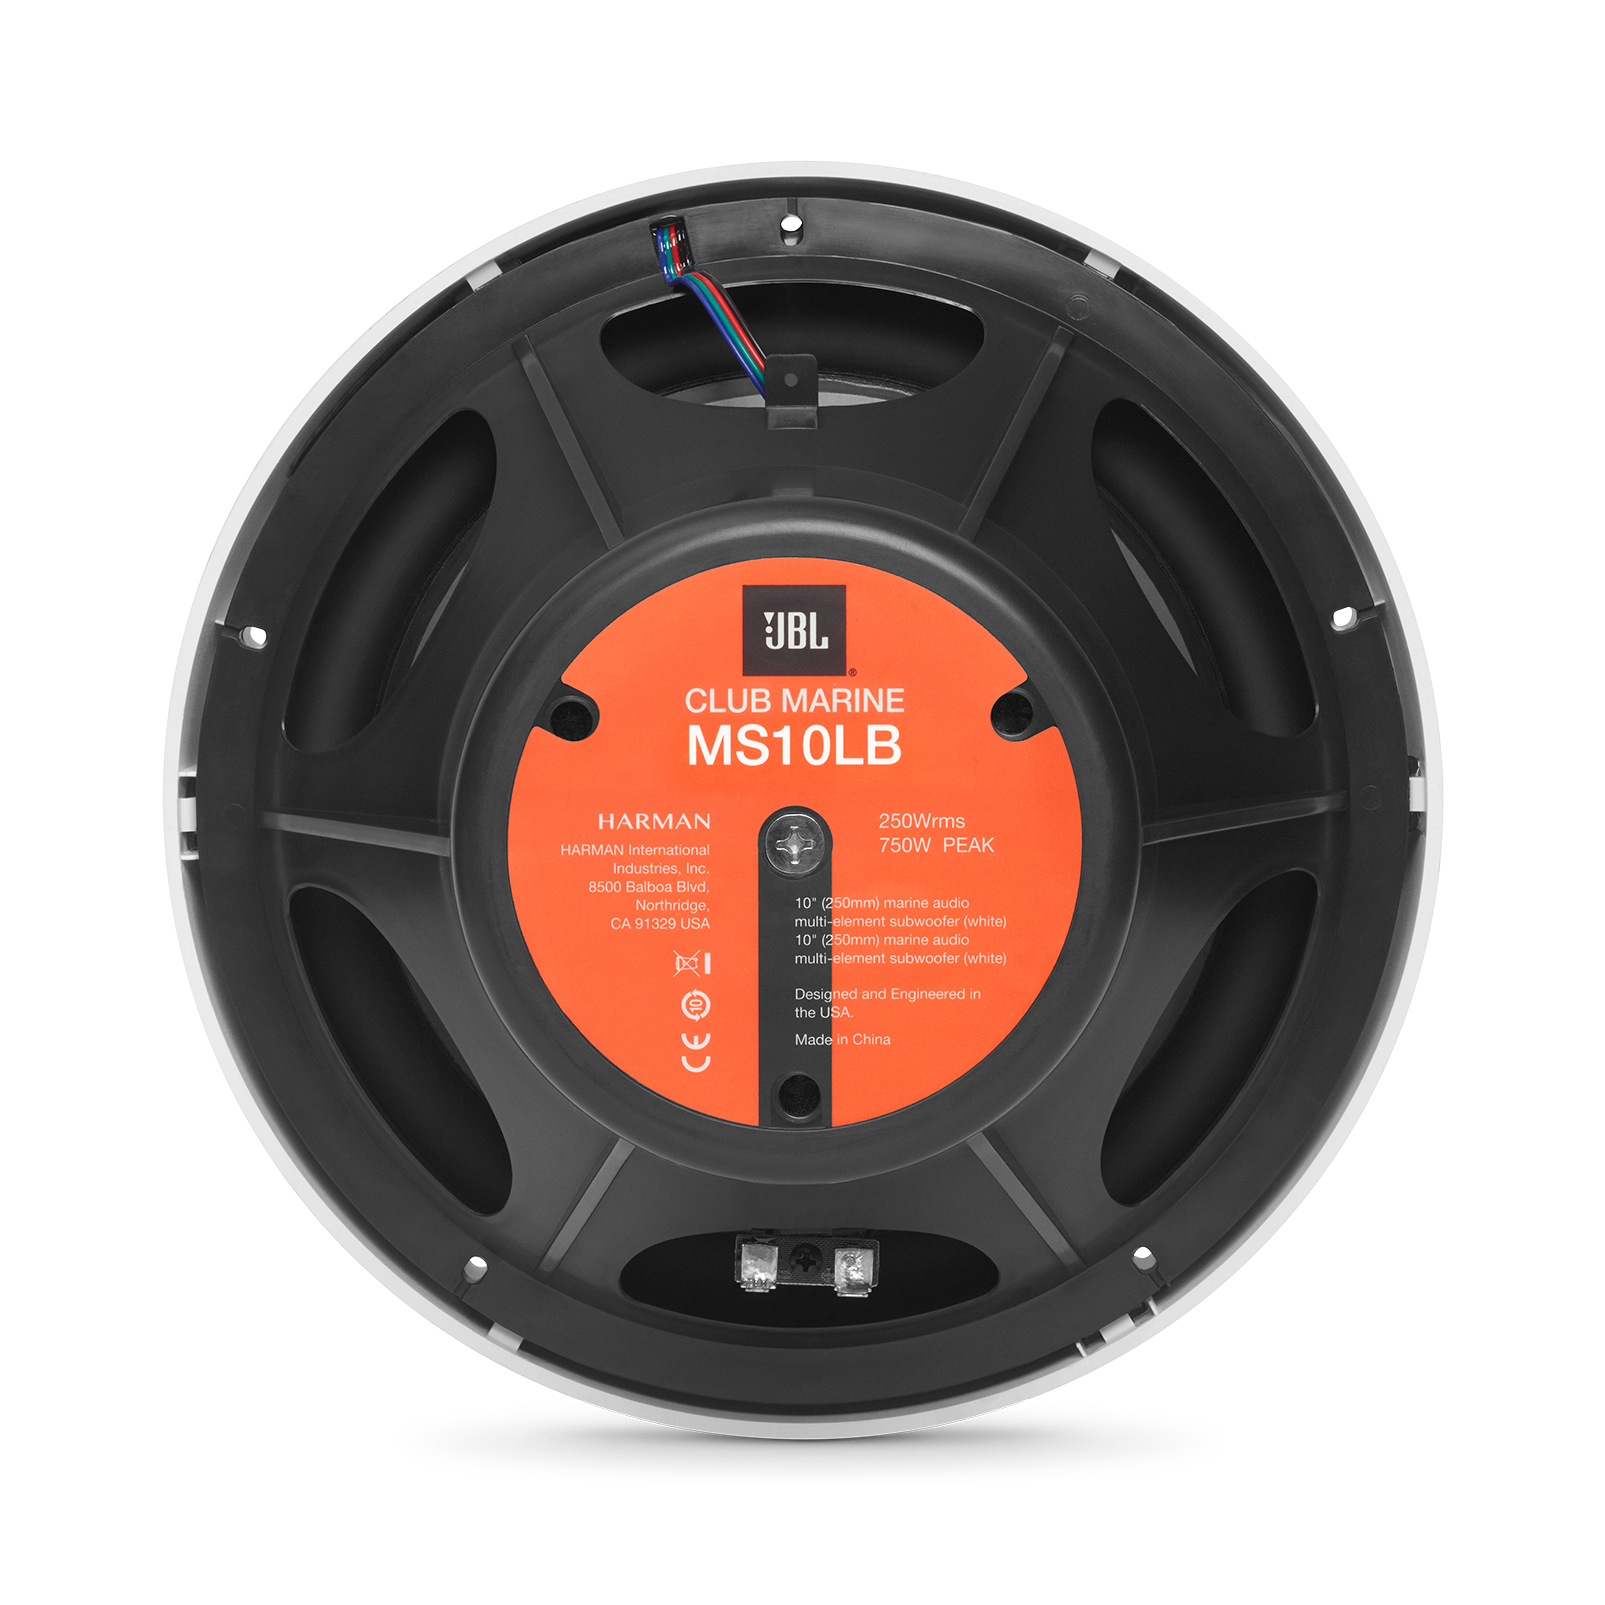 "Club Marine MS10LB - Black Matte - Club Marine MS10LB—10"" (250mm) marine audio multi-element subwoofer with RGB lighting – Black - Back"